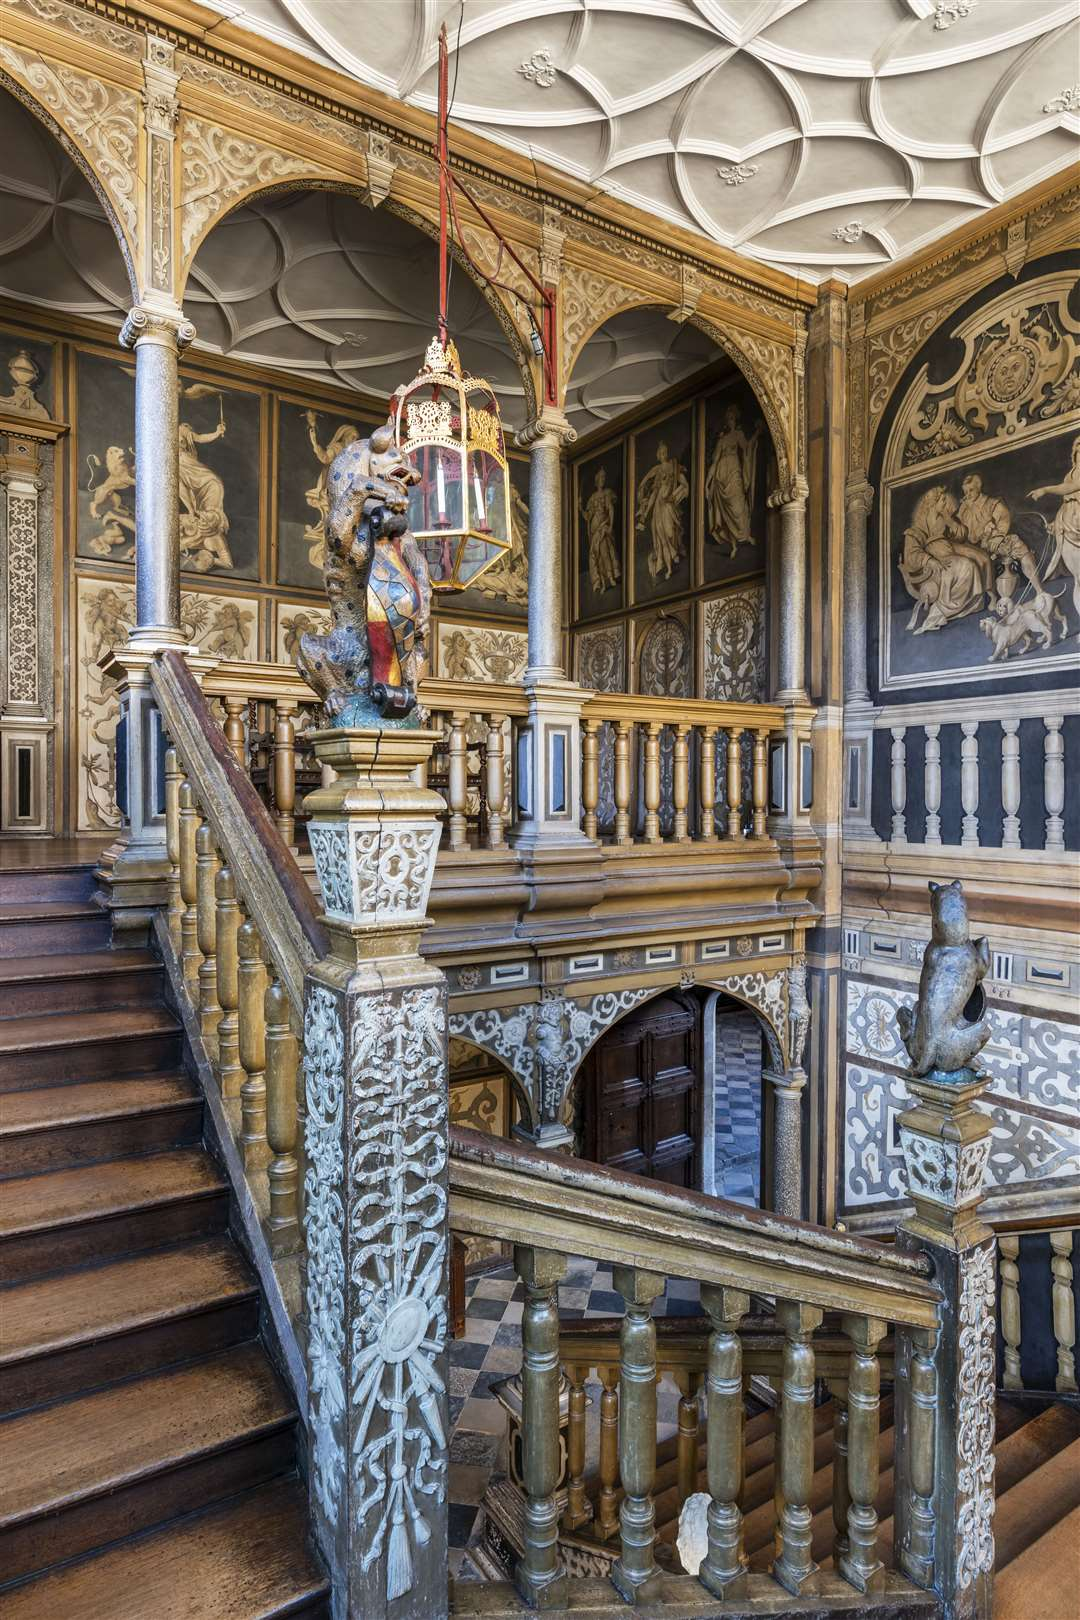 The Great Staircase at Knoe, Sevenoaks Picture: Andreas von Einsiedel/National Trust Images